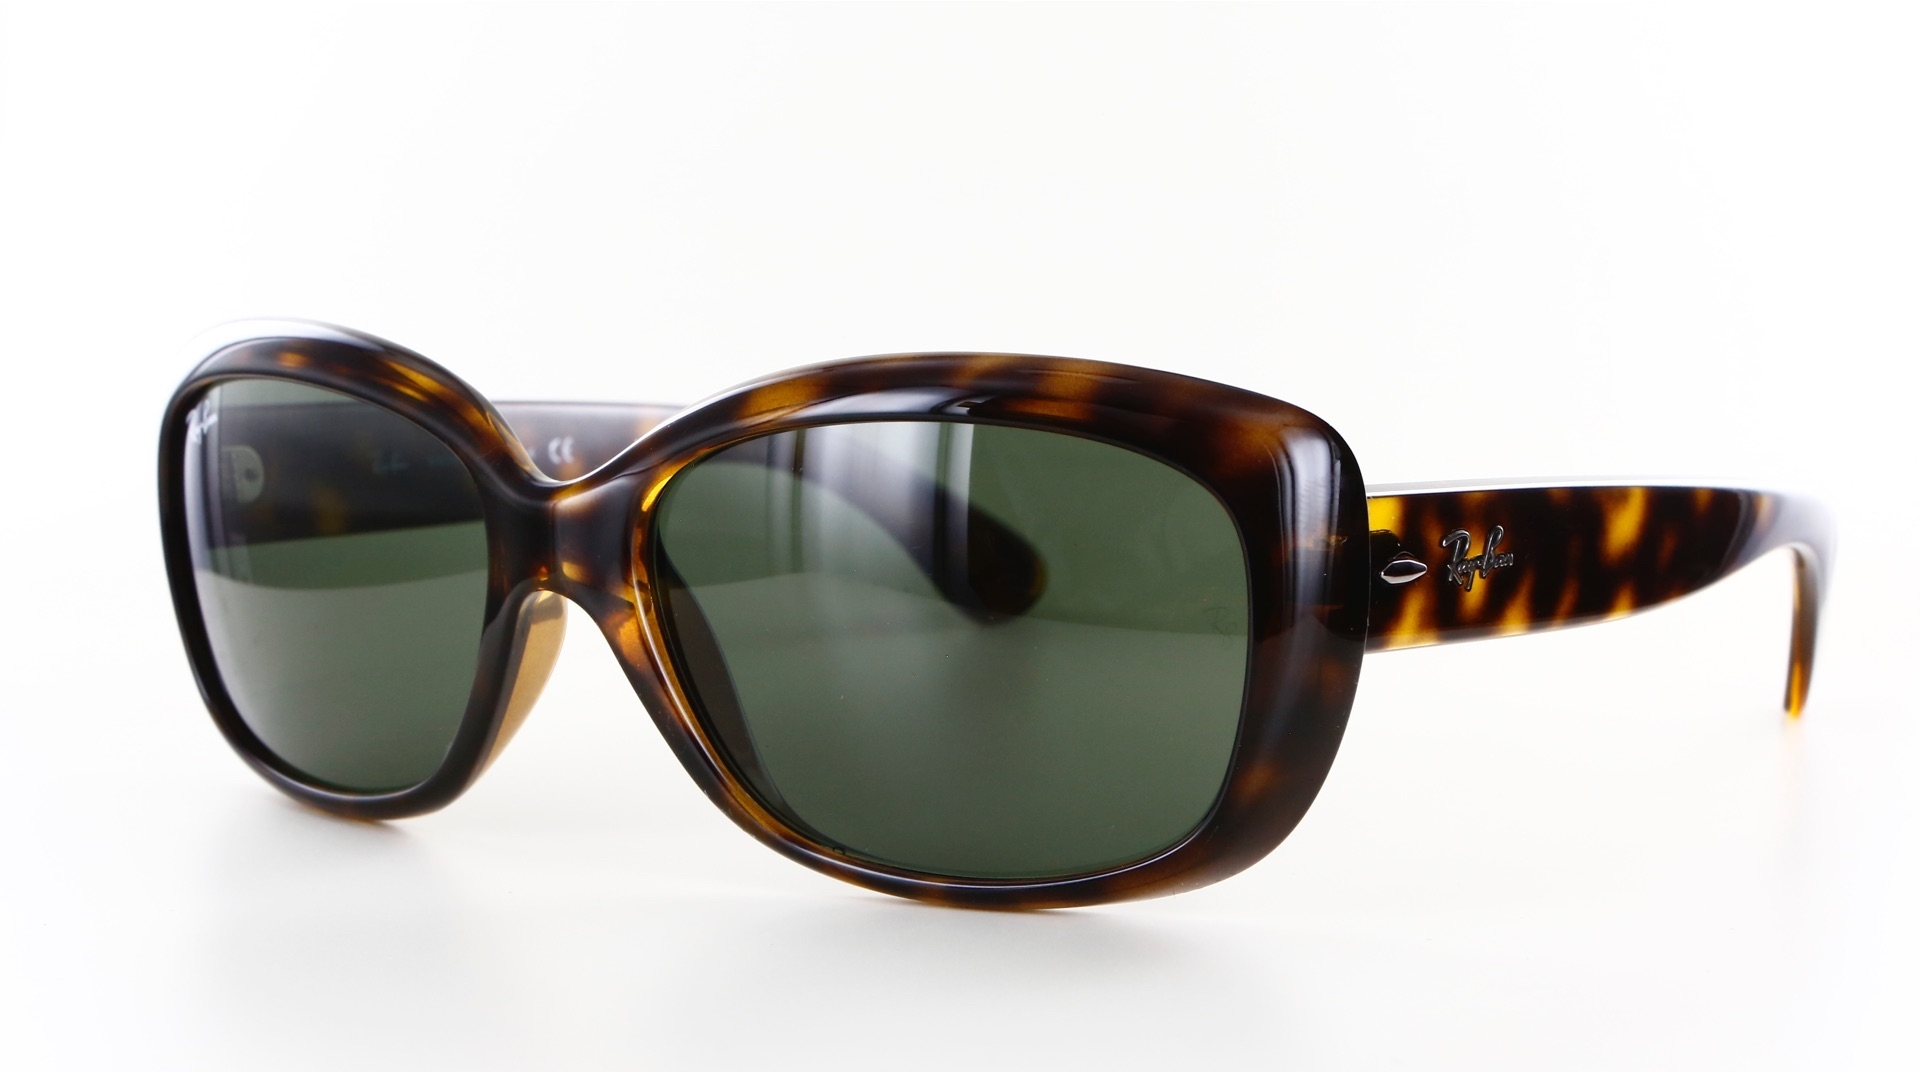 Ray-Ban - ref: 54080